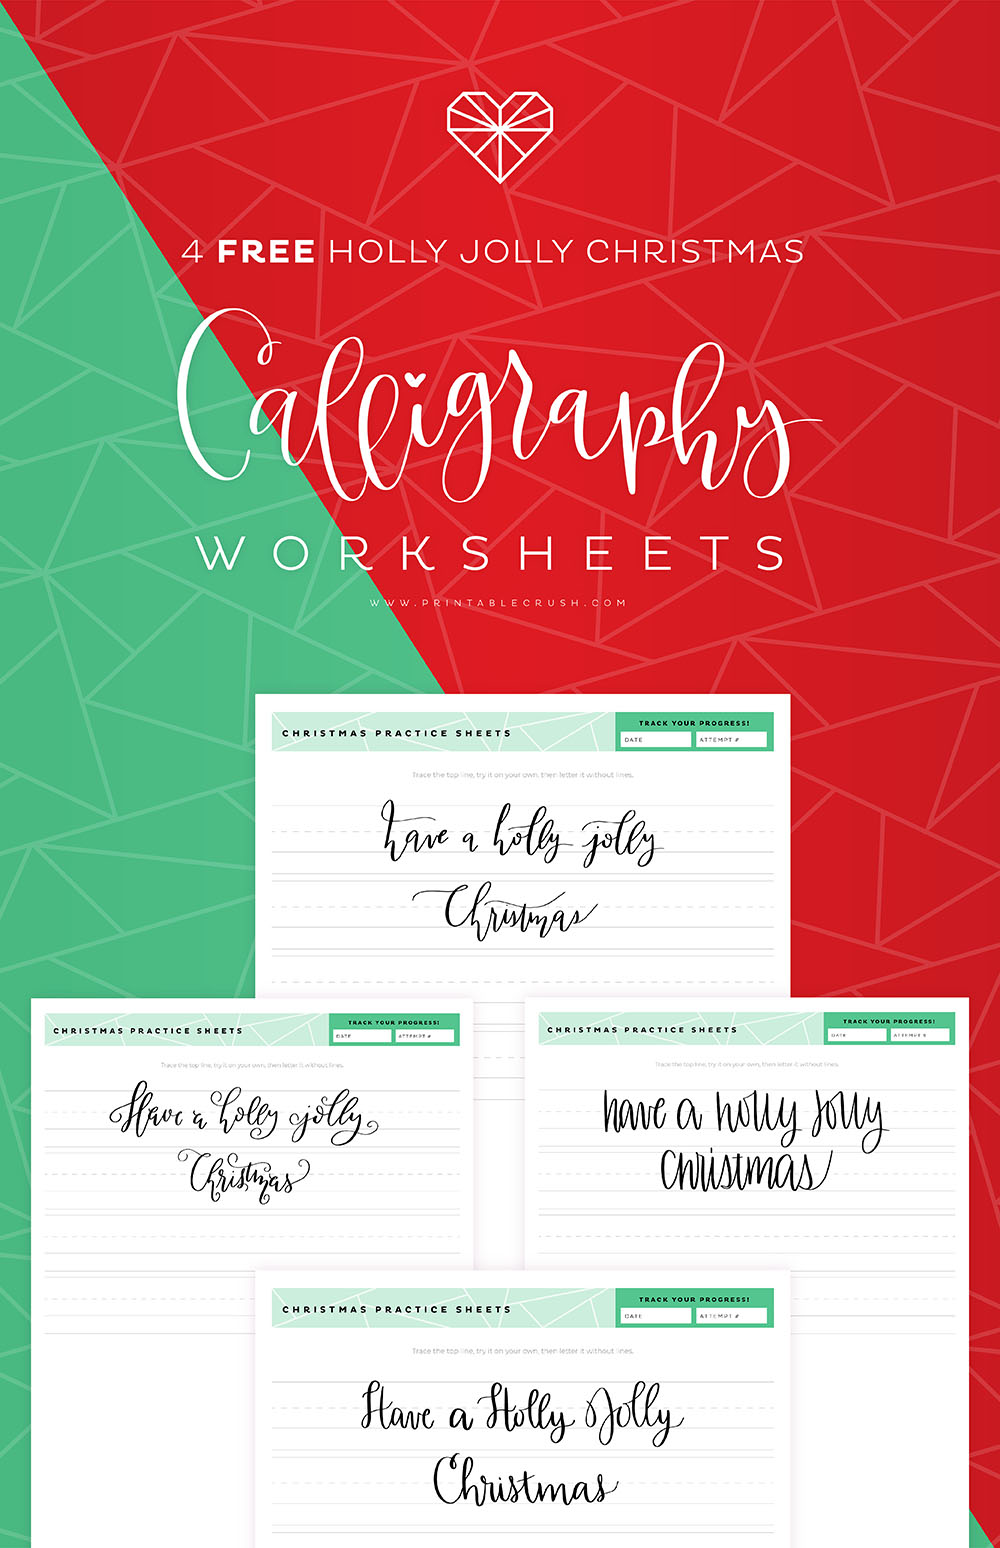 Practice your calligraphy pen skills with these FREE Holly Jolly Christmas Calligraphy Practice Sheets. You get four different designs with plenty of practice space. #calligraphypracticesheets #casualcalligraphy #casualcalligraphycourse #calligraphypractice #calligraphytutorial #freeprintable #freepracticesheet #christmascalligraphyworksheet #hollyjollychristmas